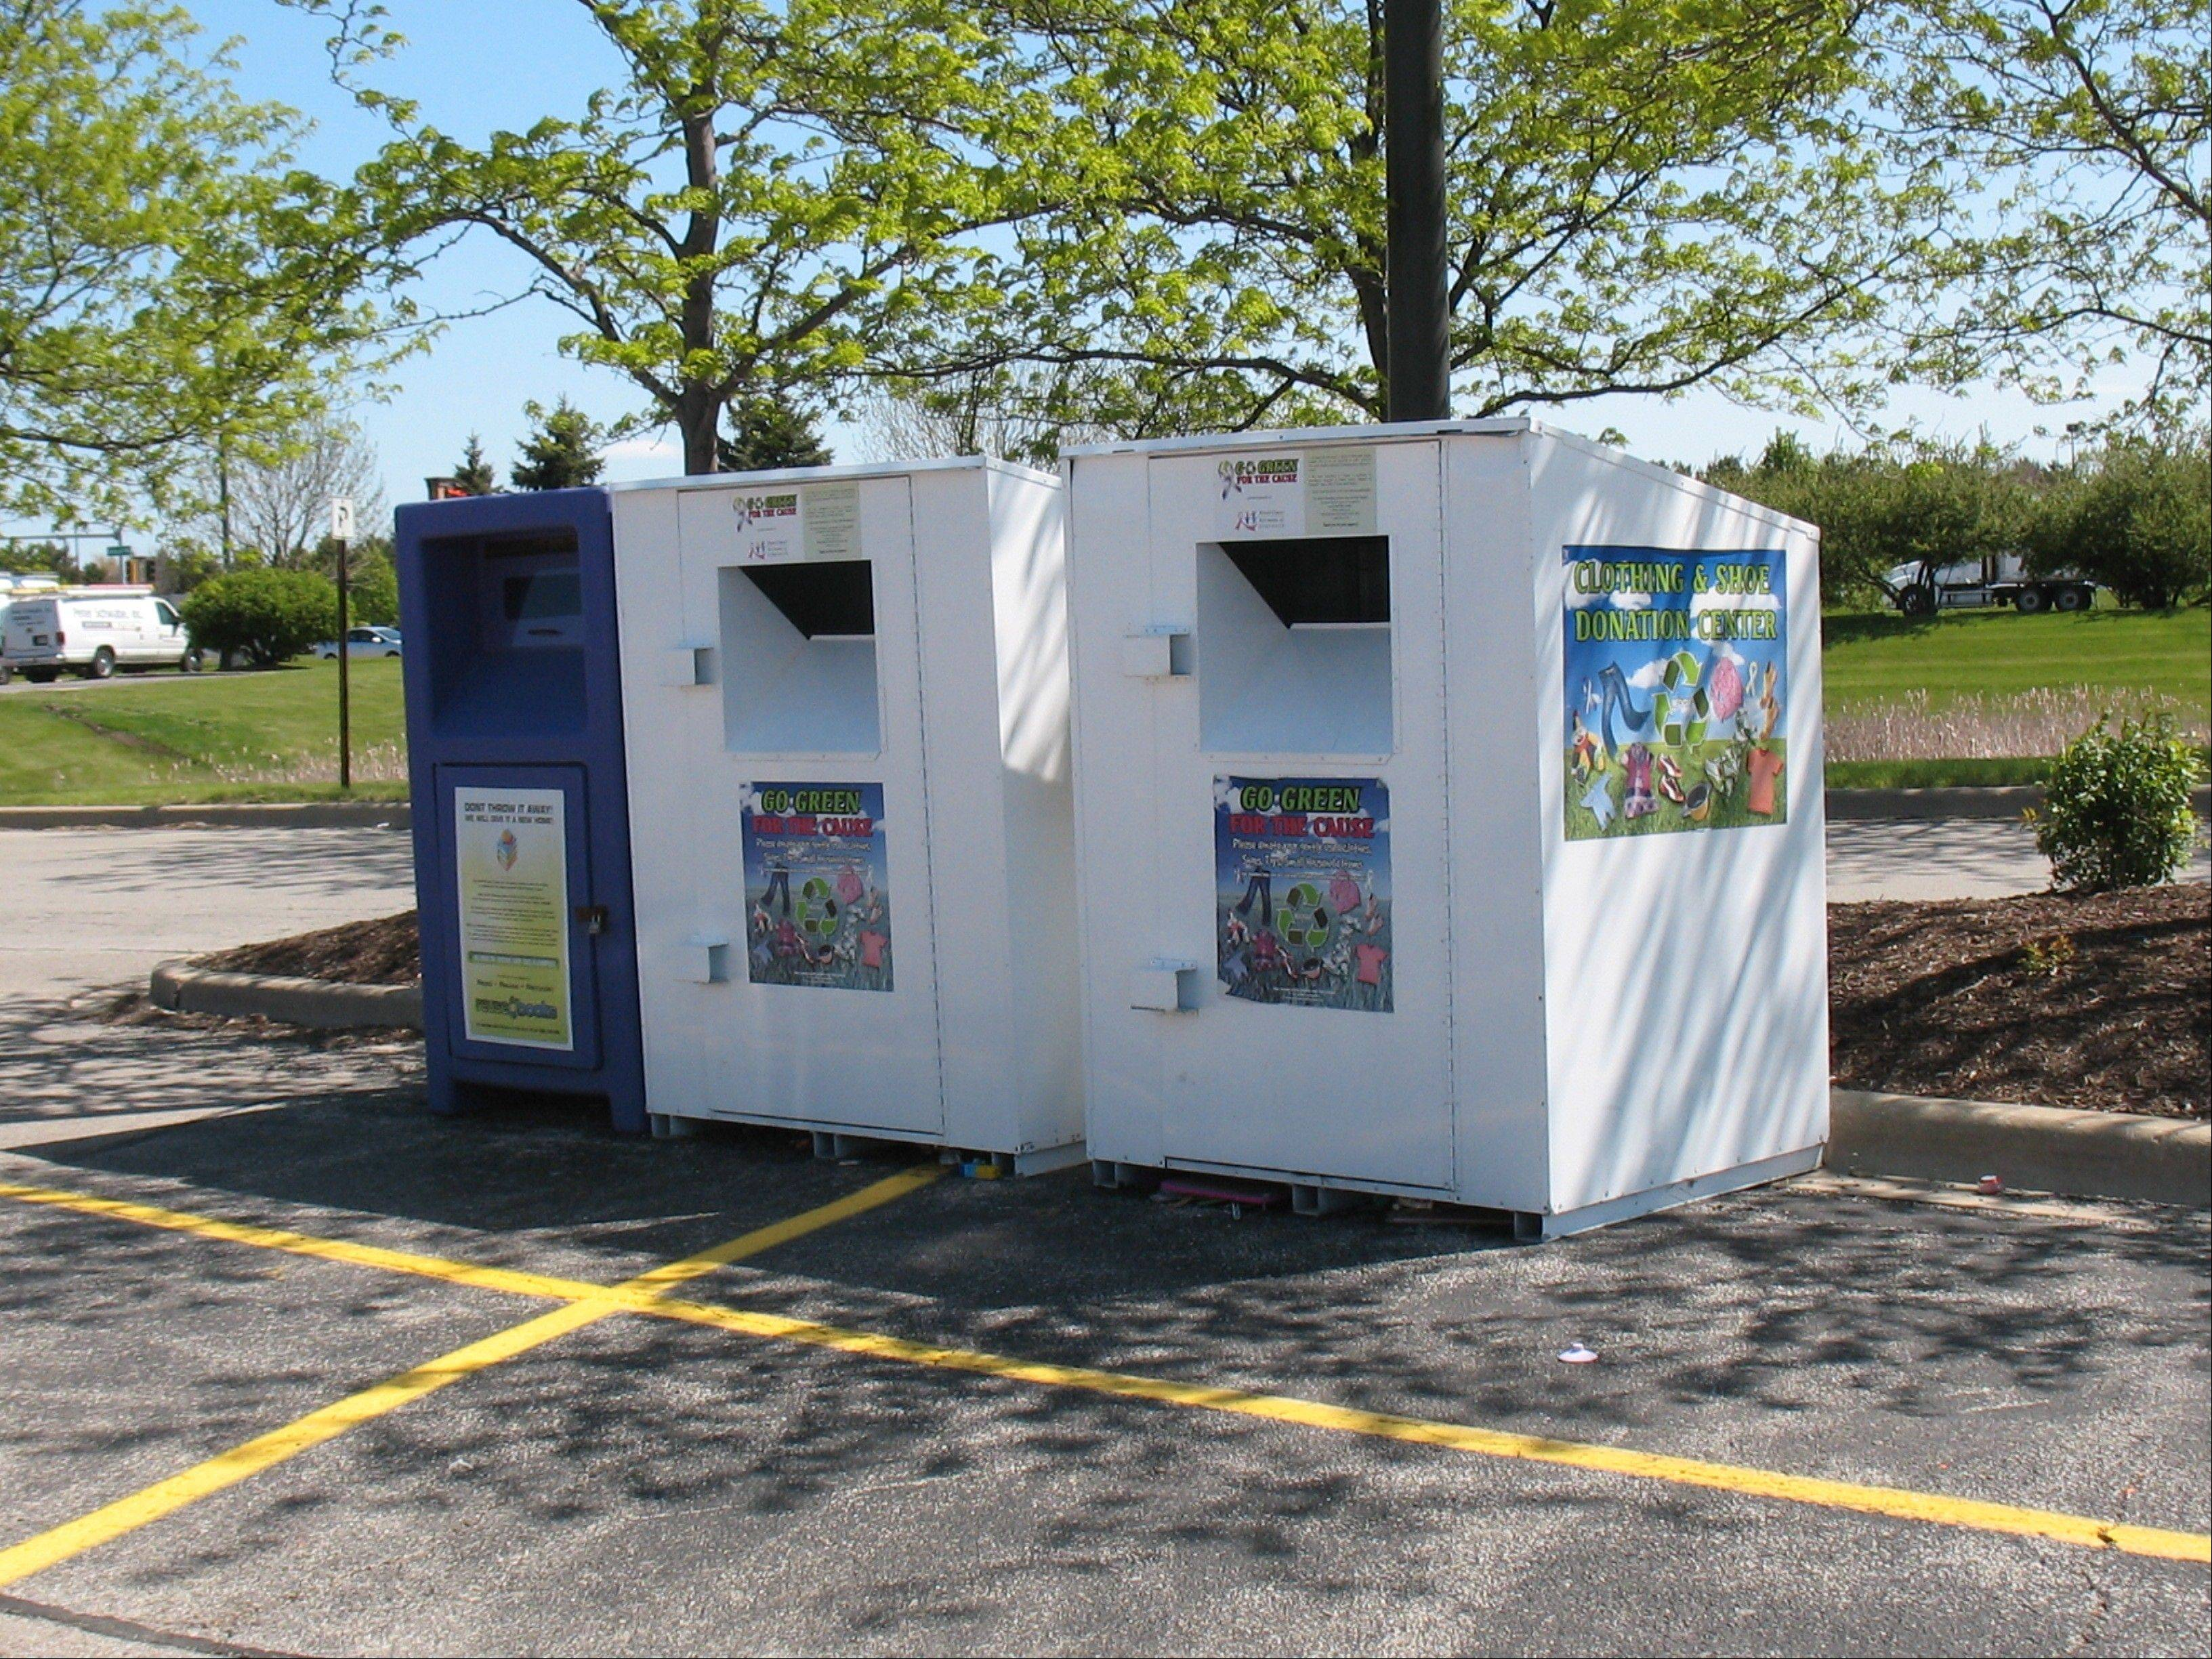 Geneva is considering banning or restricting clothing and book collection boxes such as these, which are in a shopping-center parking lot at Fabyan Parkway and Randall Road.